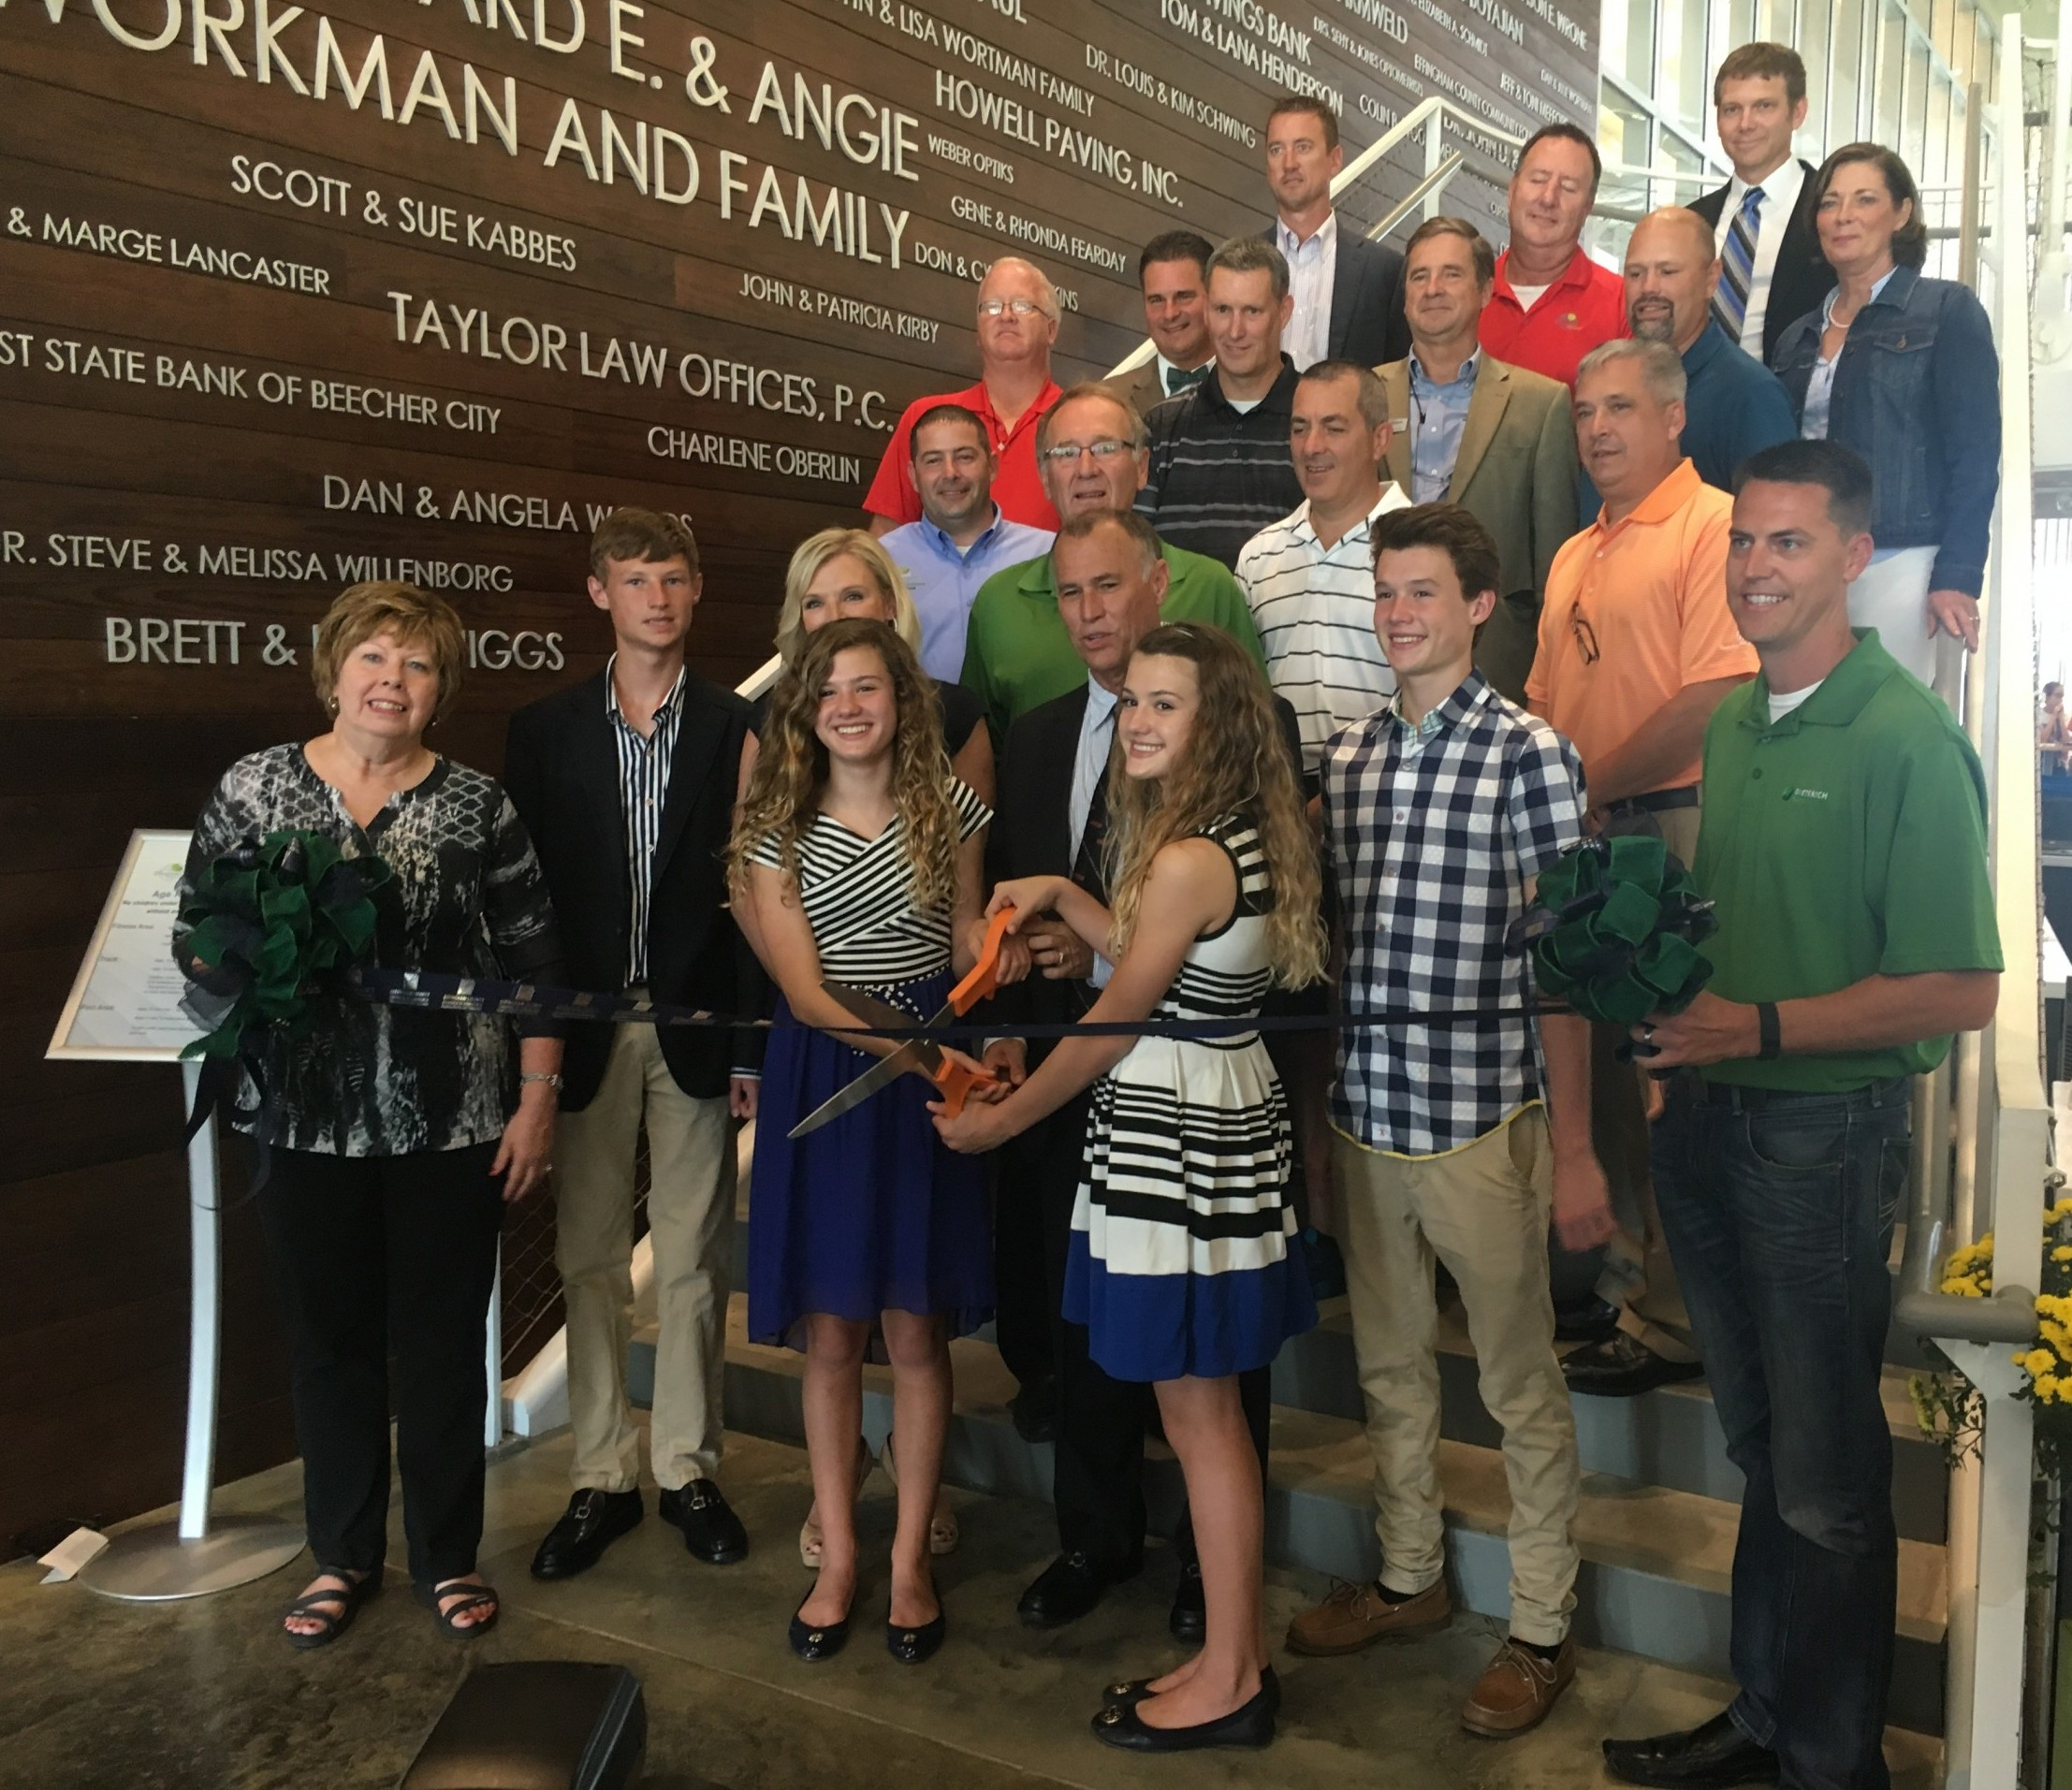 Richard E. Workman Sports & Wellness Complex holds Grand Opening